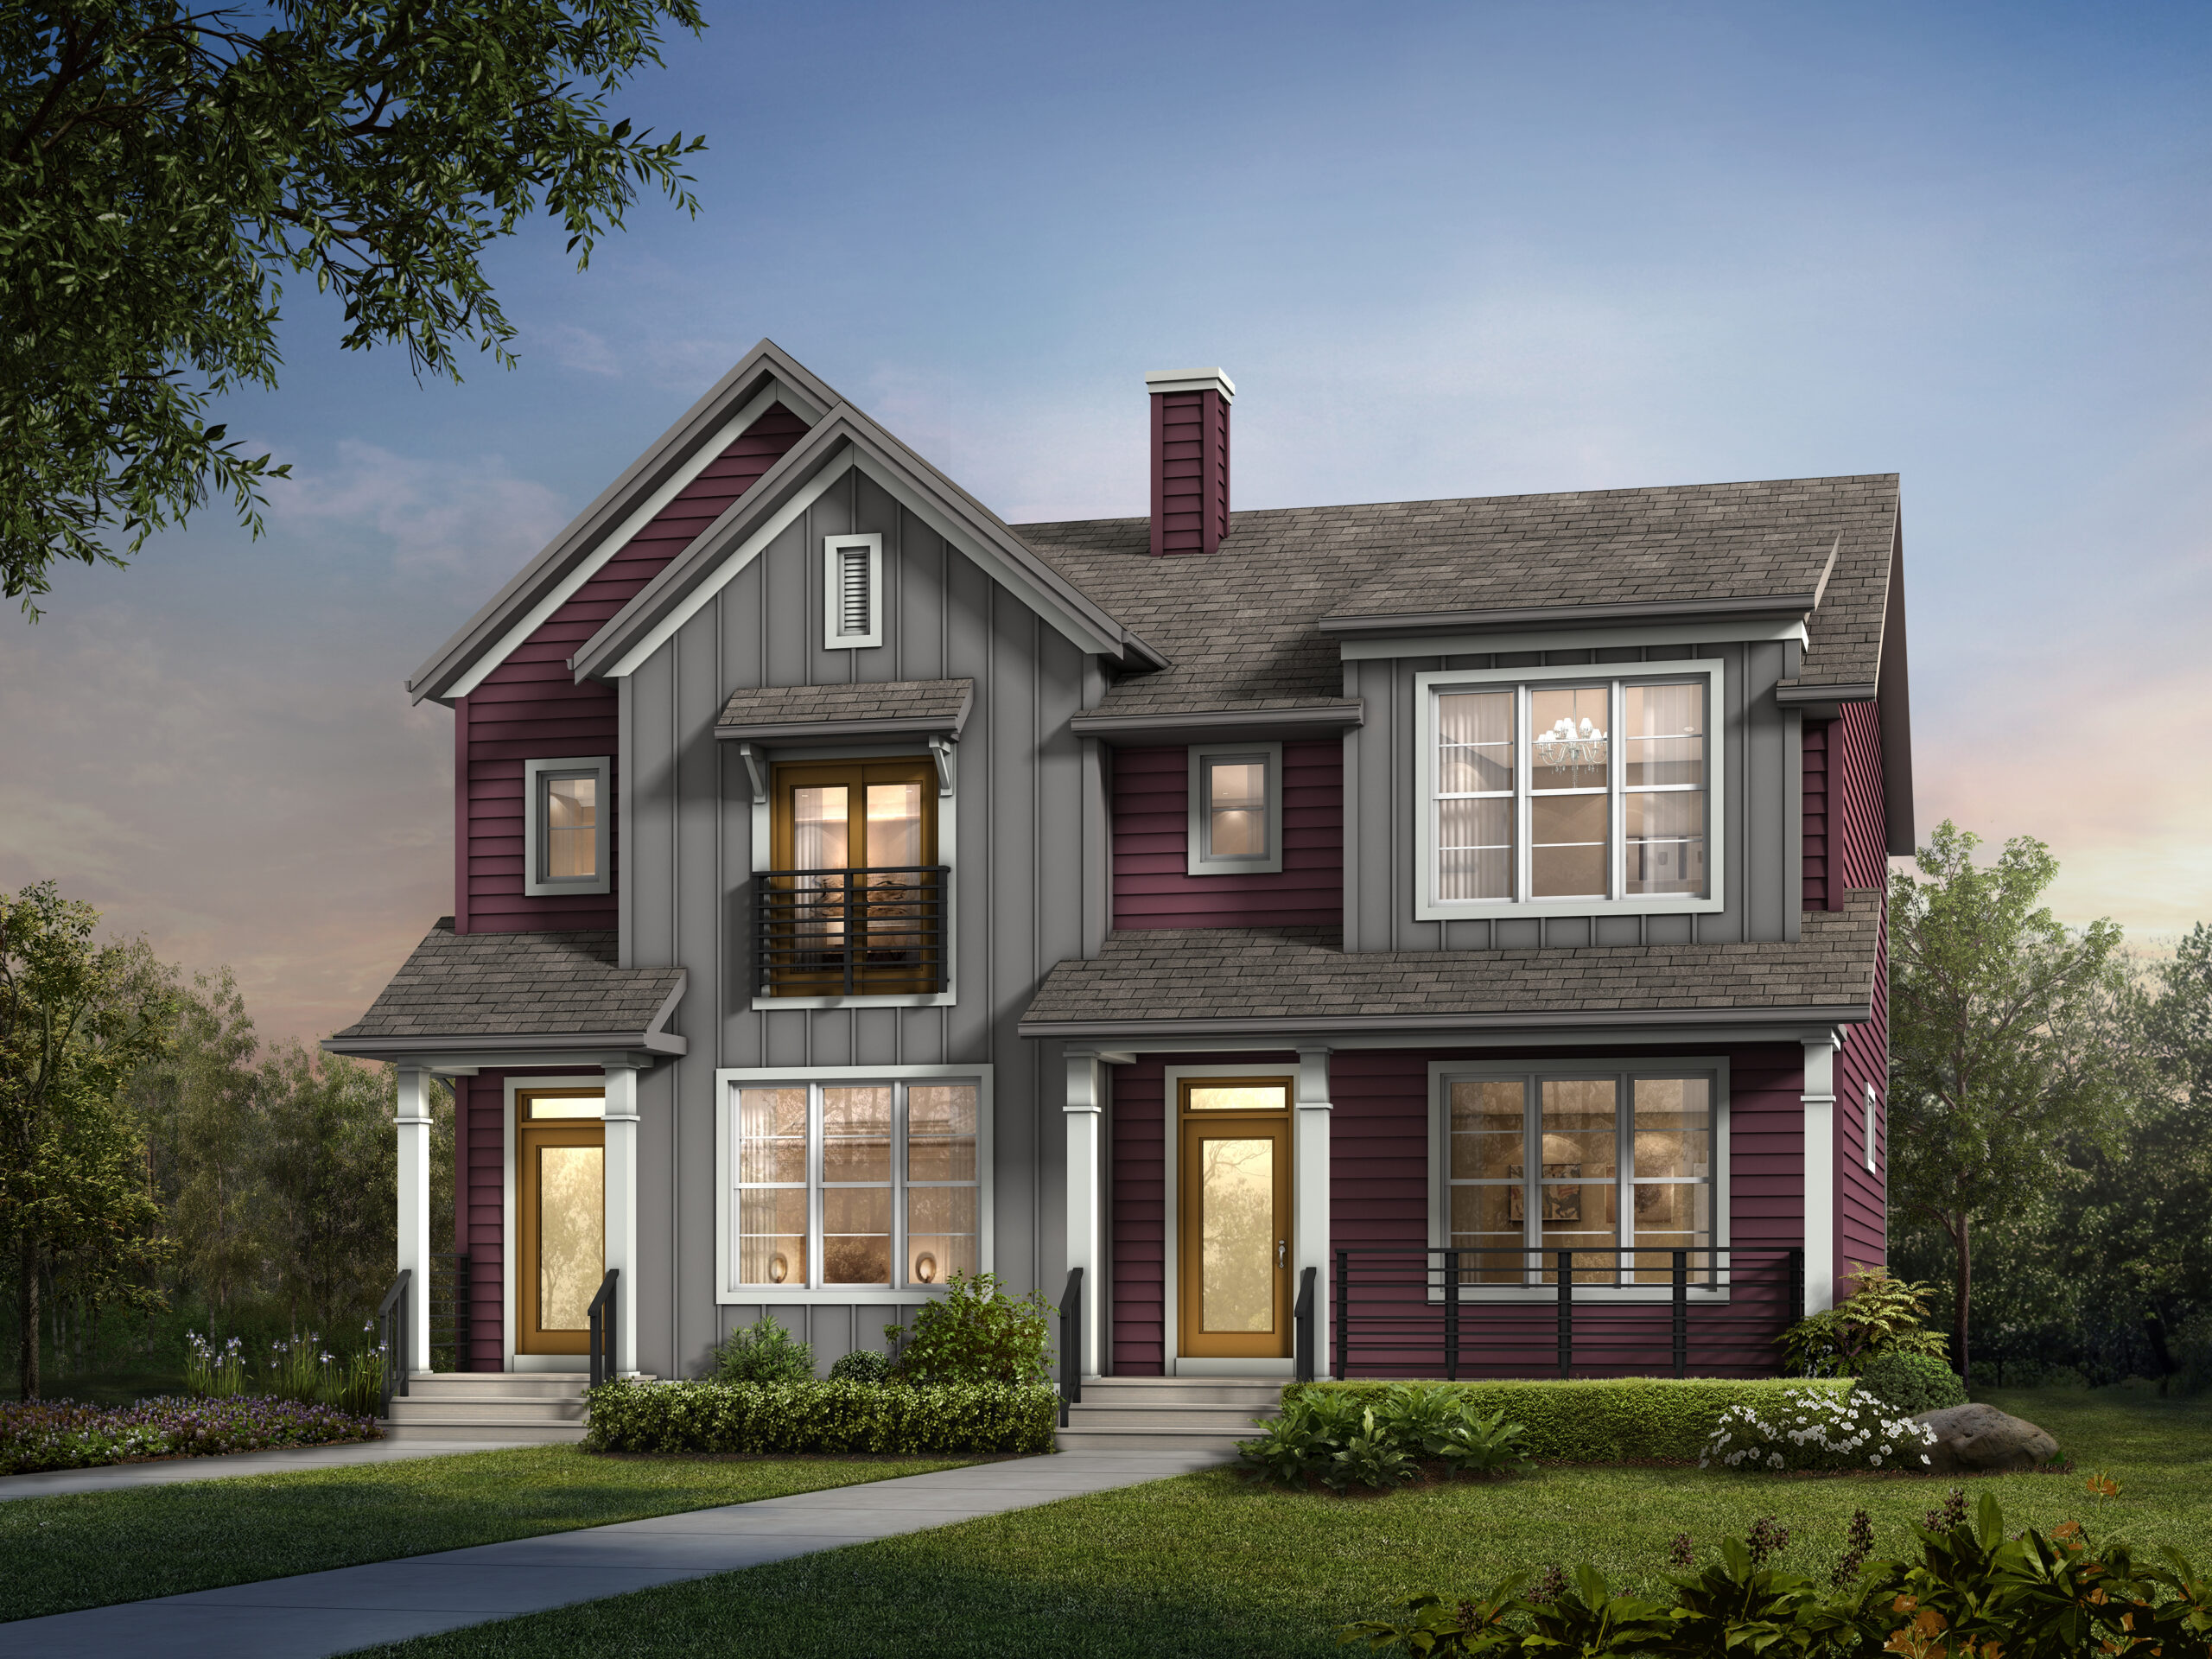 A modern farmhouse duplex home with detached garage features white window trim and multicolored siding, including a wide front porch.